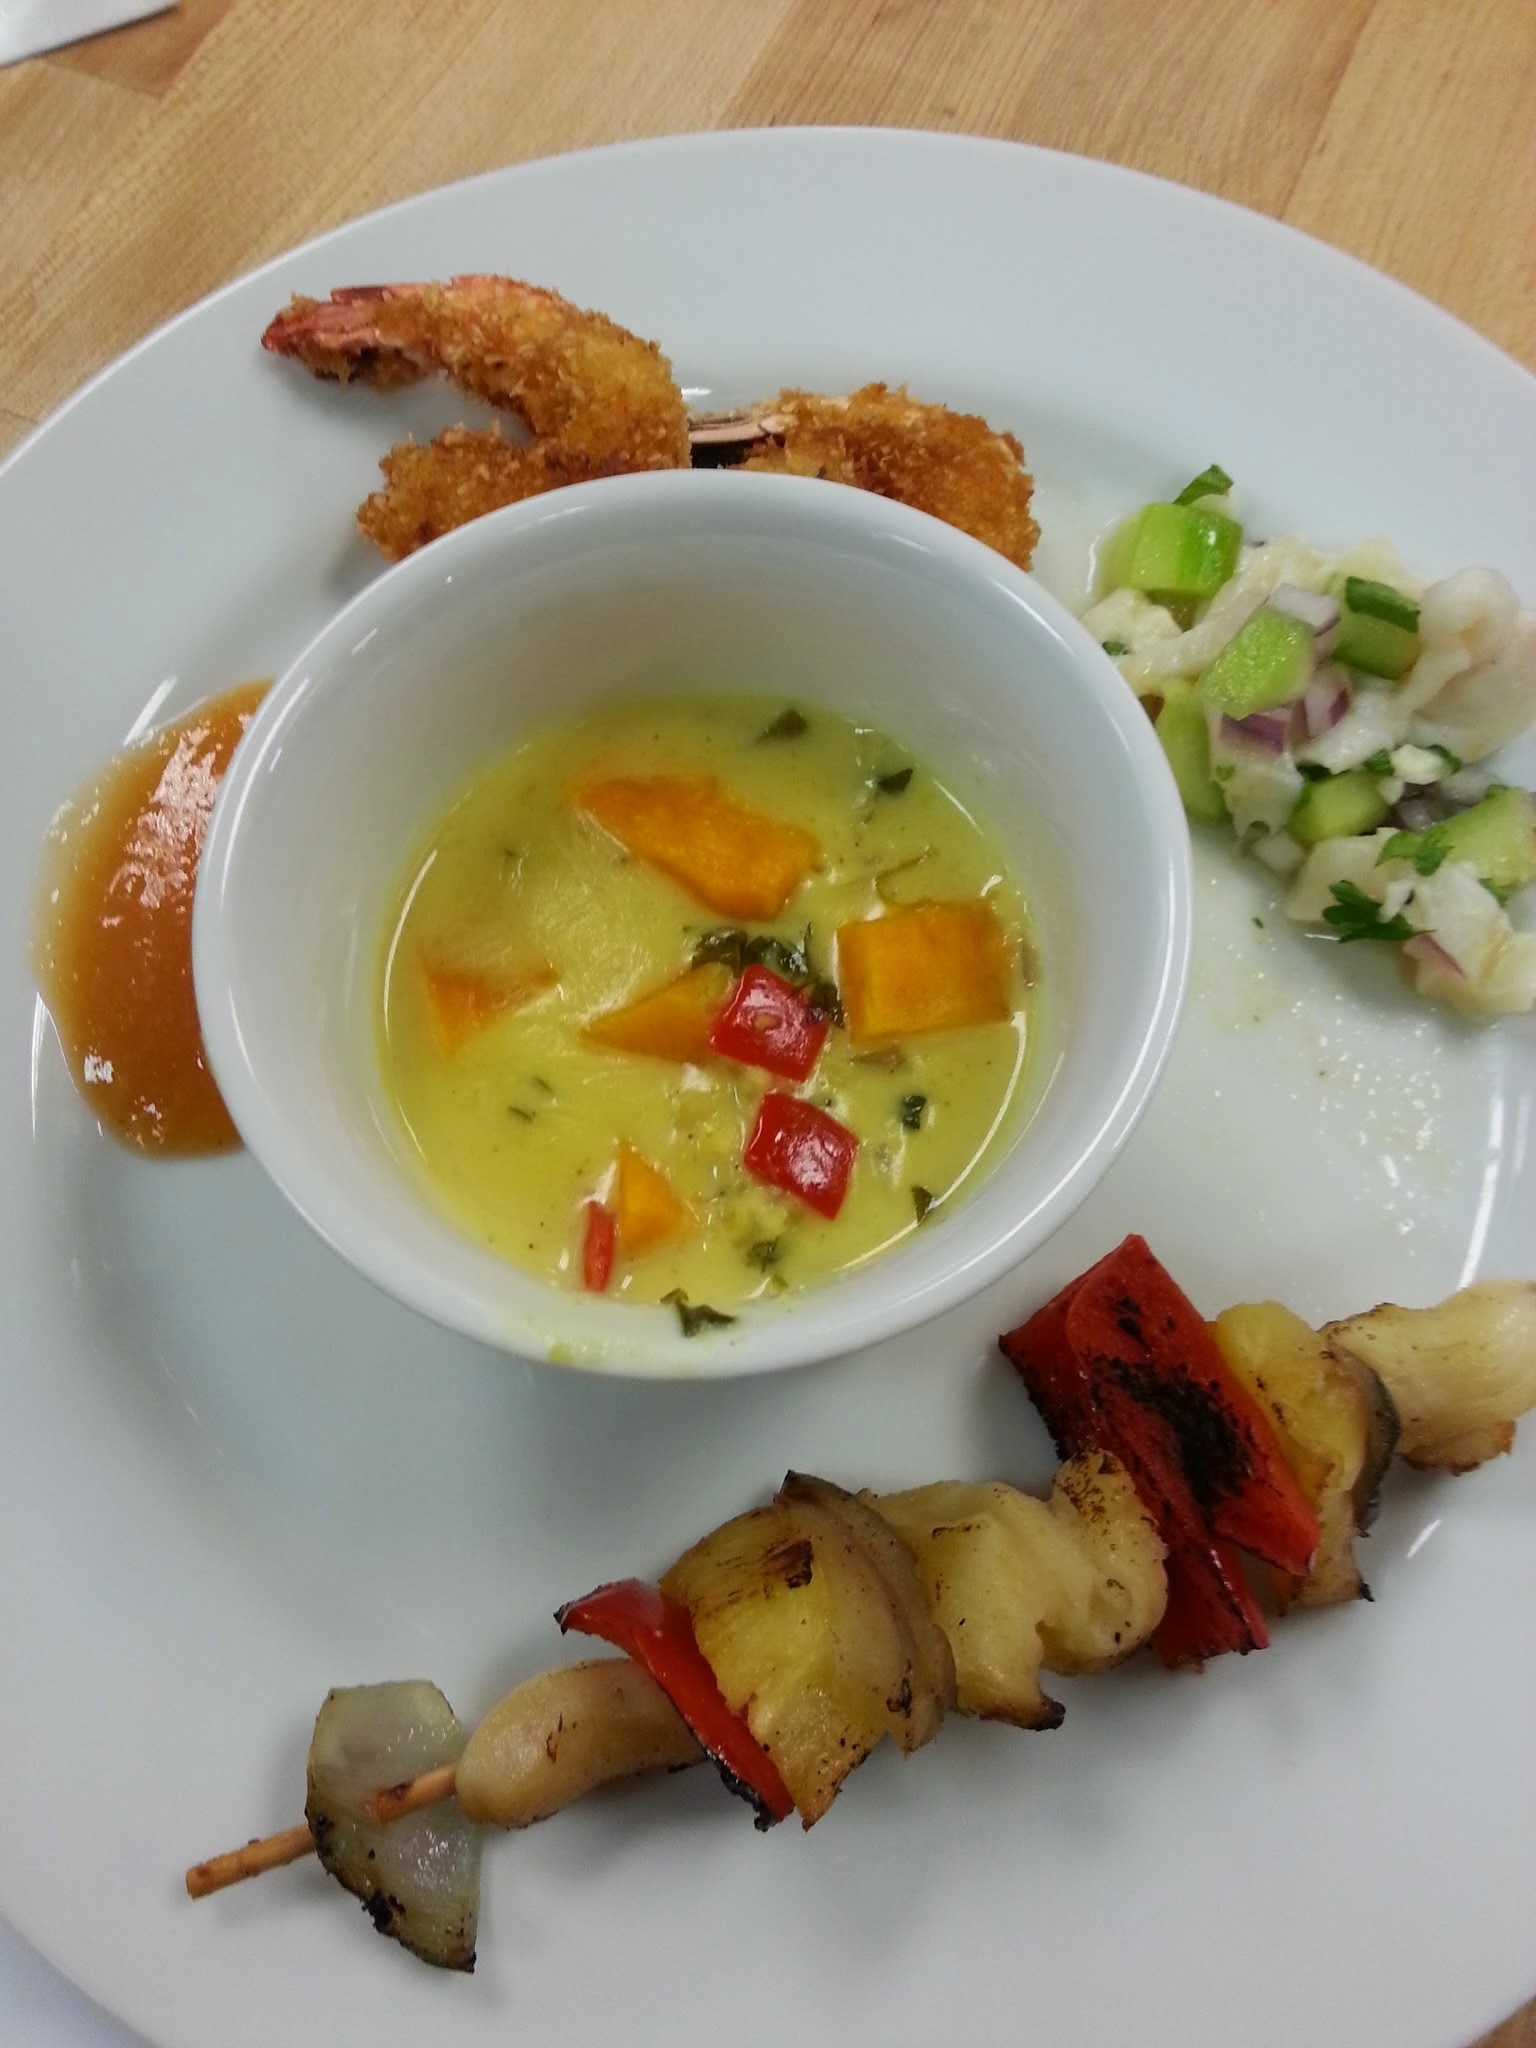 Ric Orlando's Tropical Treats, Coconut Shrimp and Conch three ways....